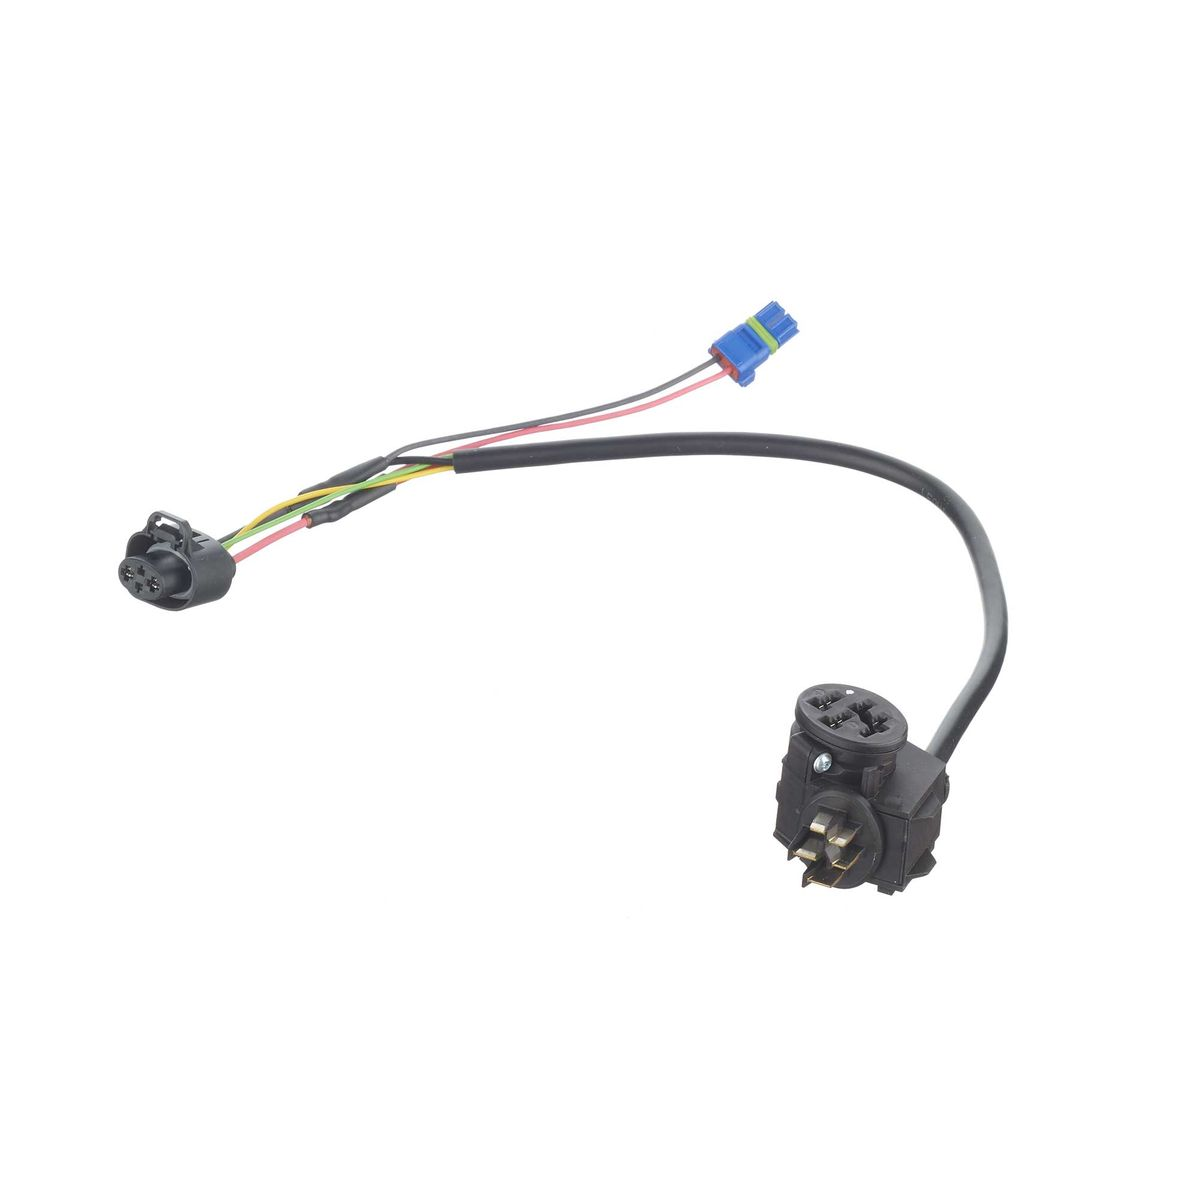 Cable for rack mount power pack Automatic Nuvinci 310mm